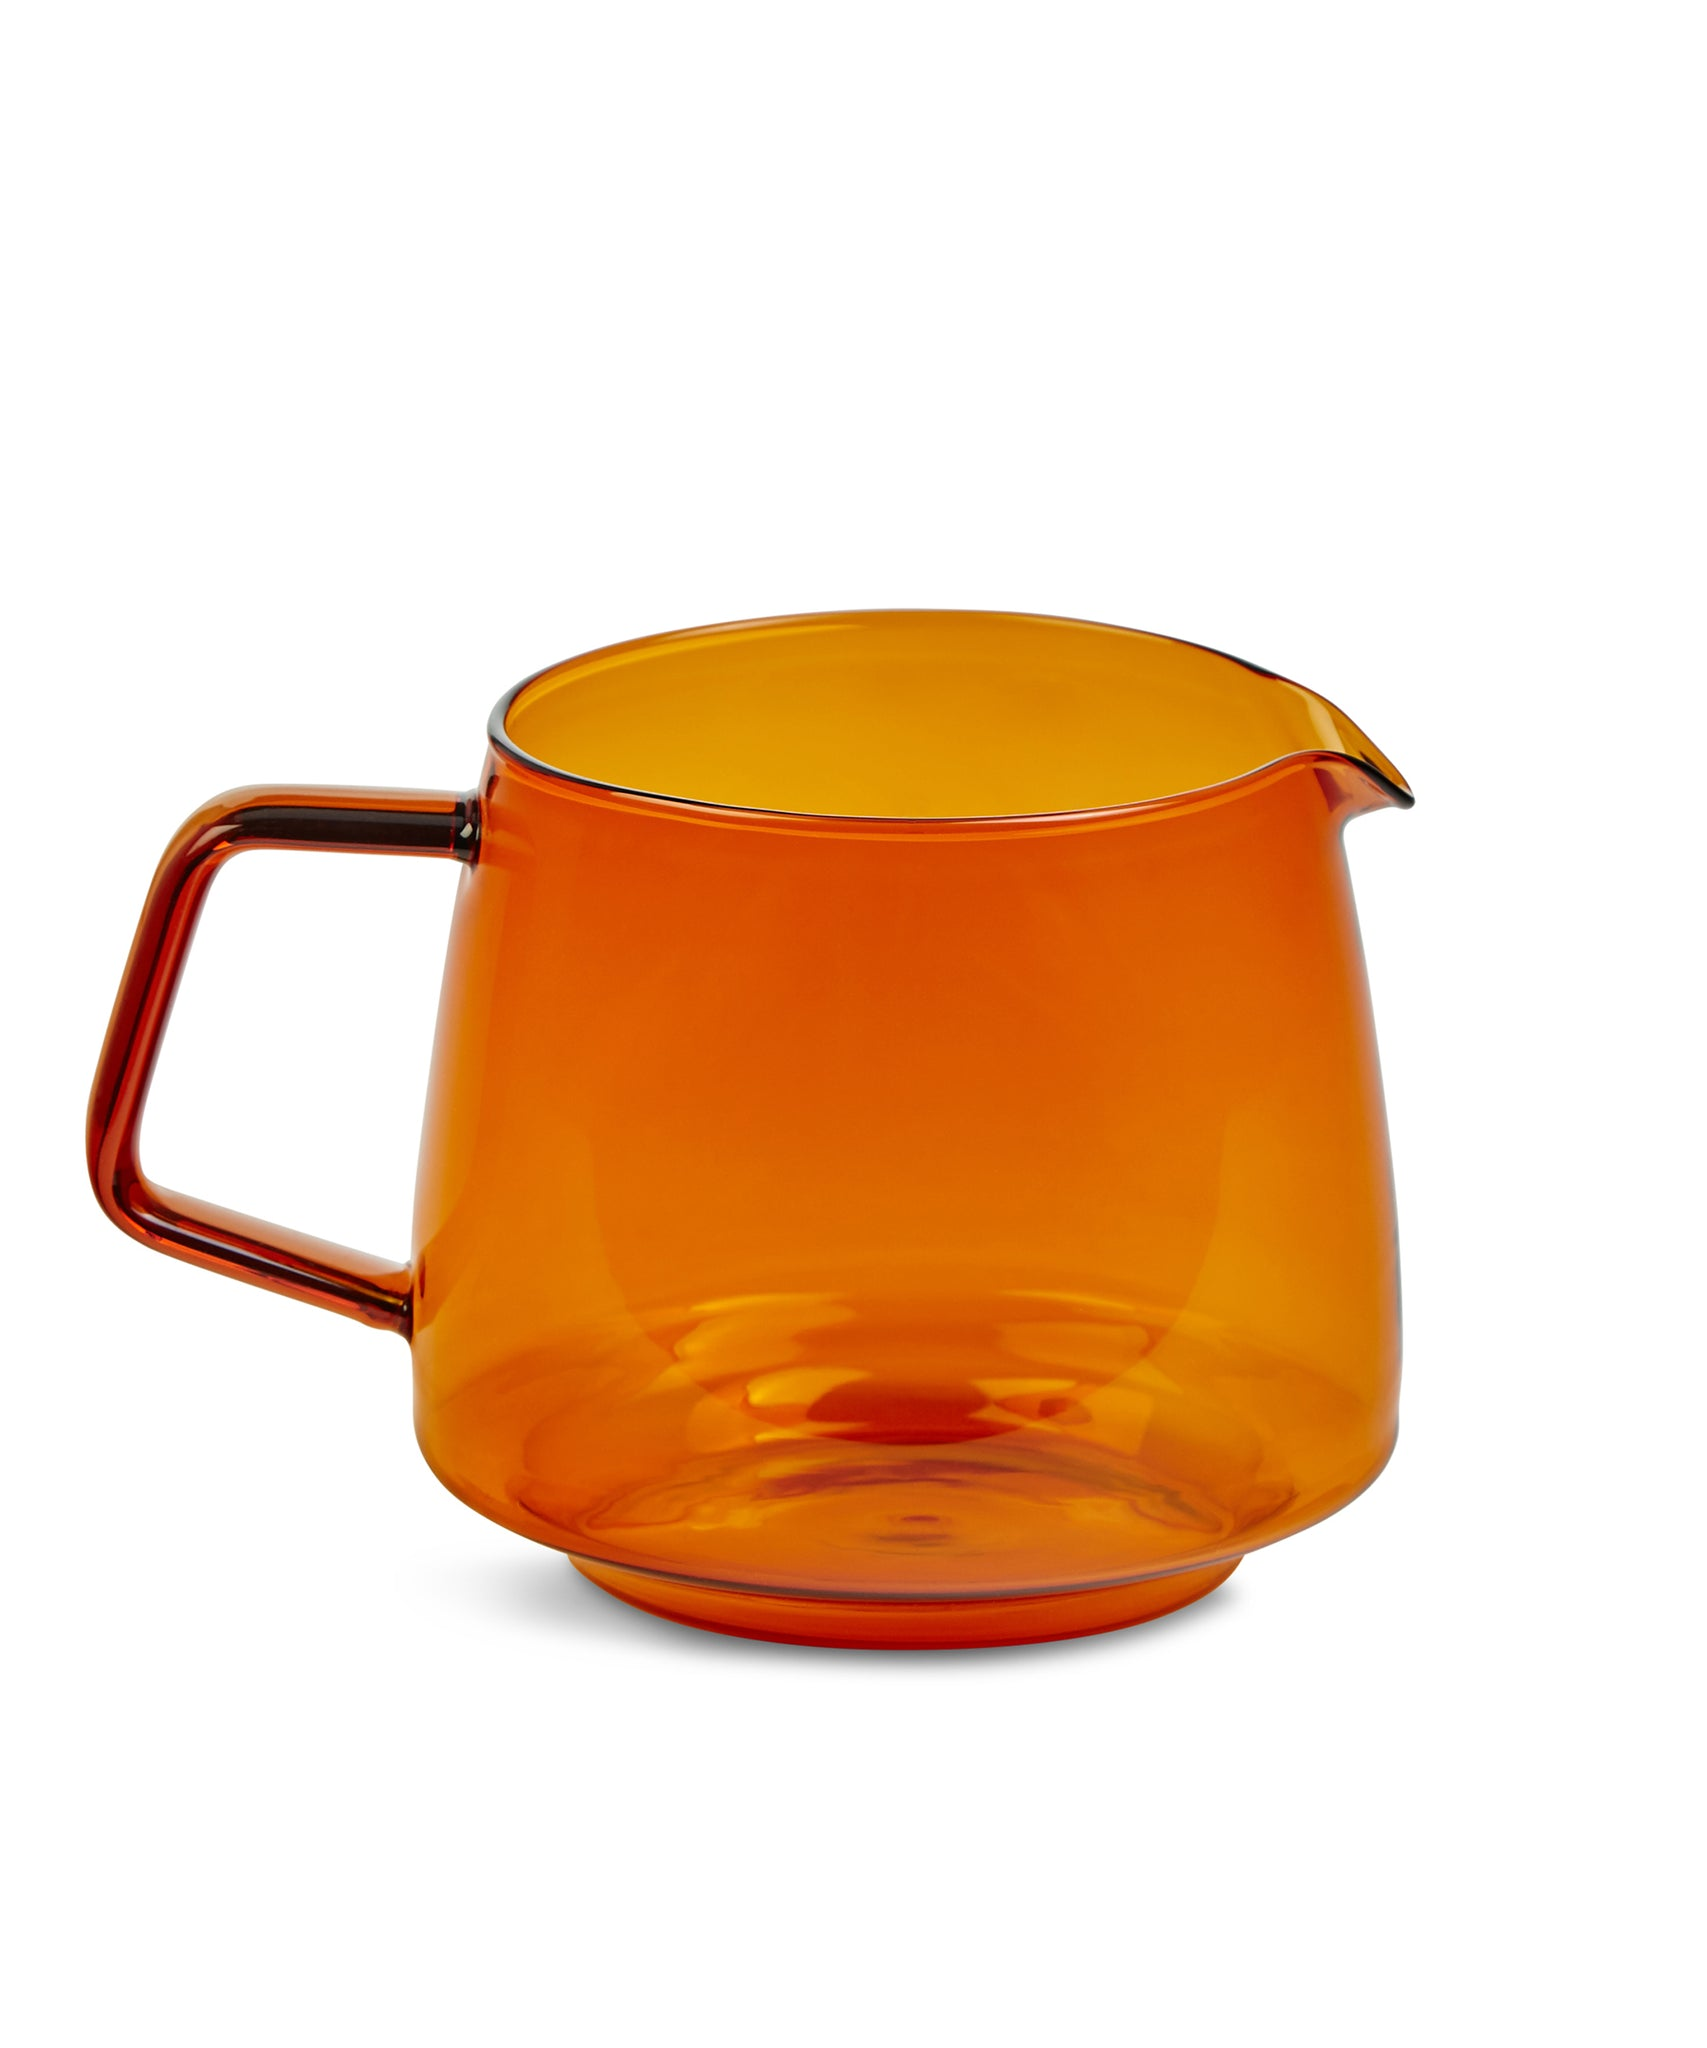 Sepia Jug 600ml by Kinto